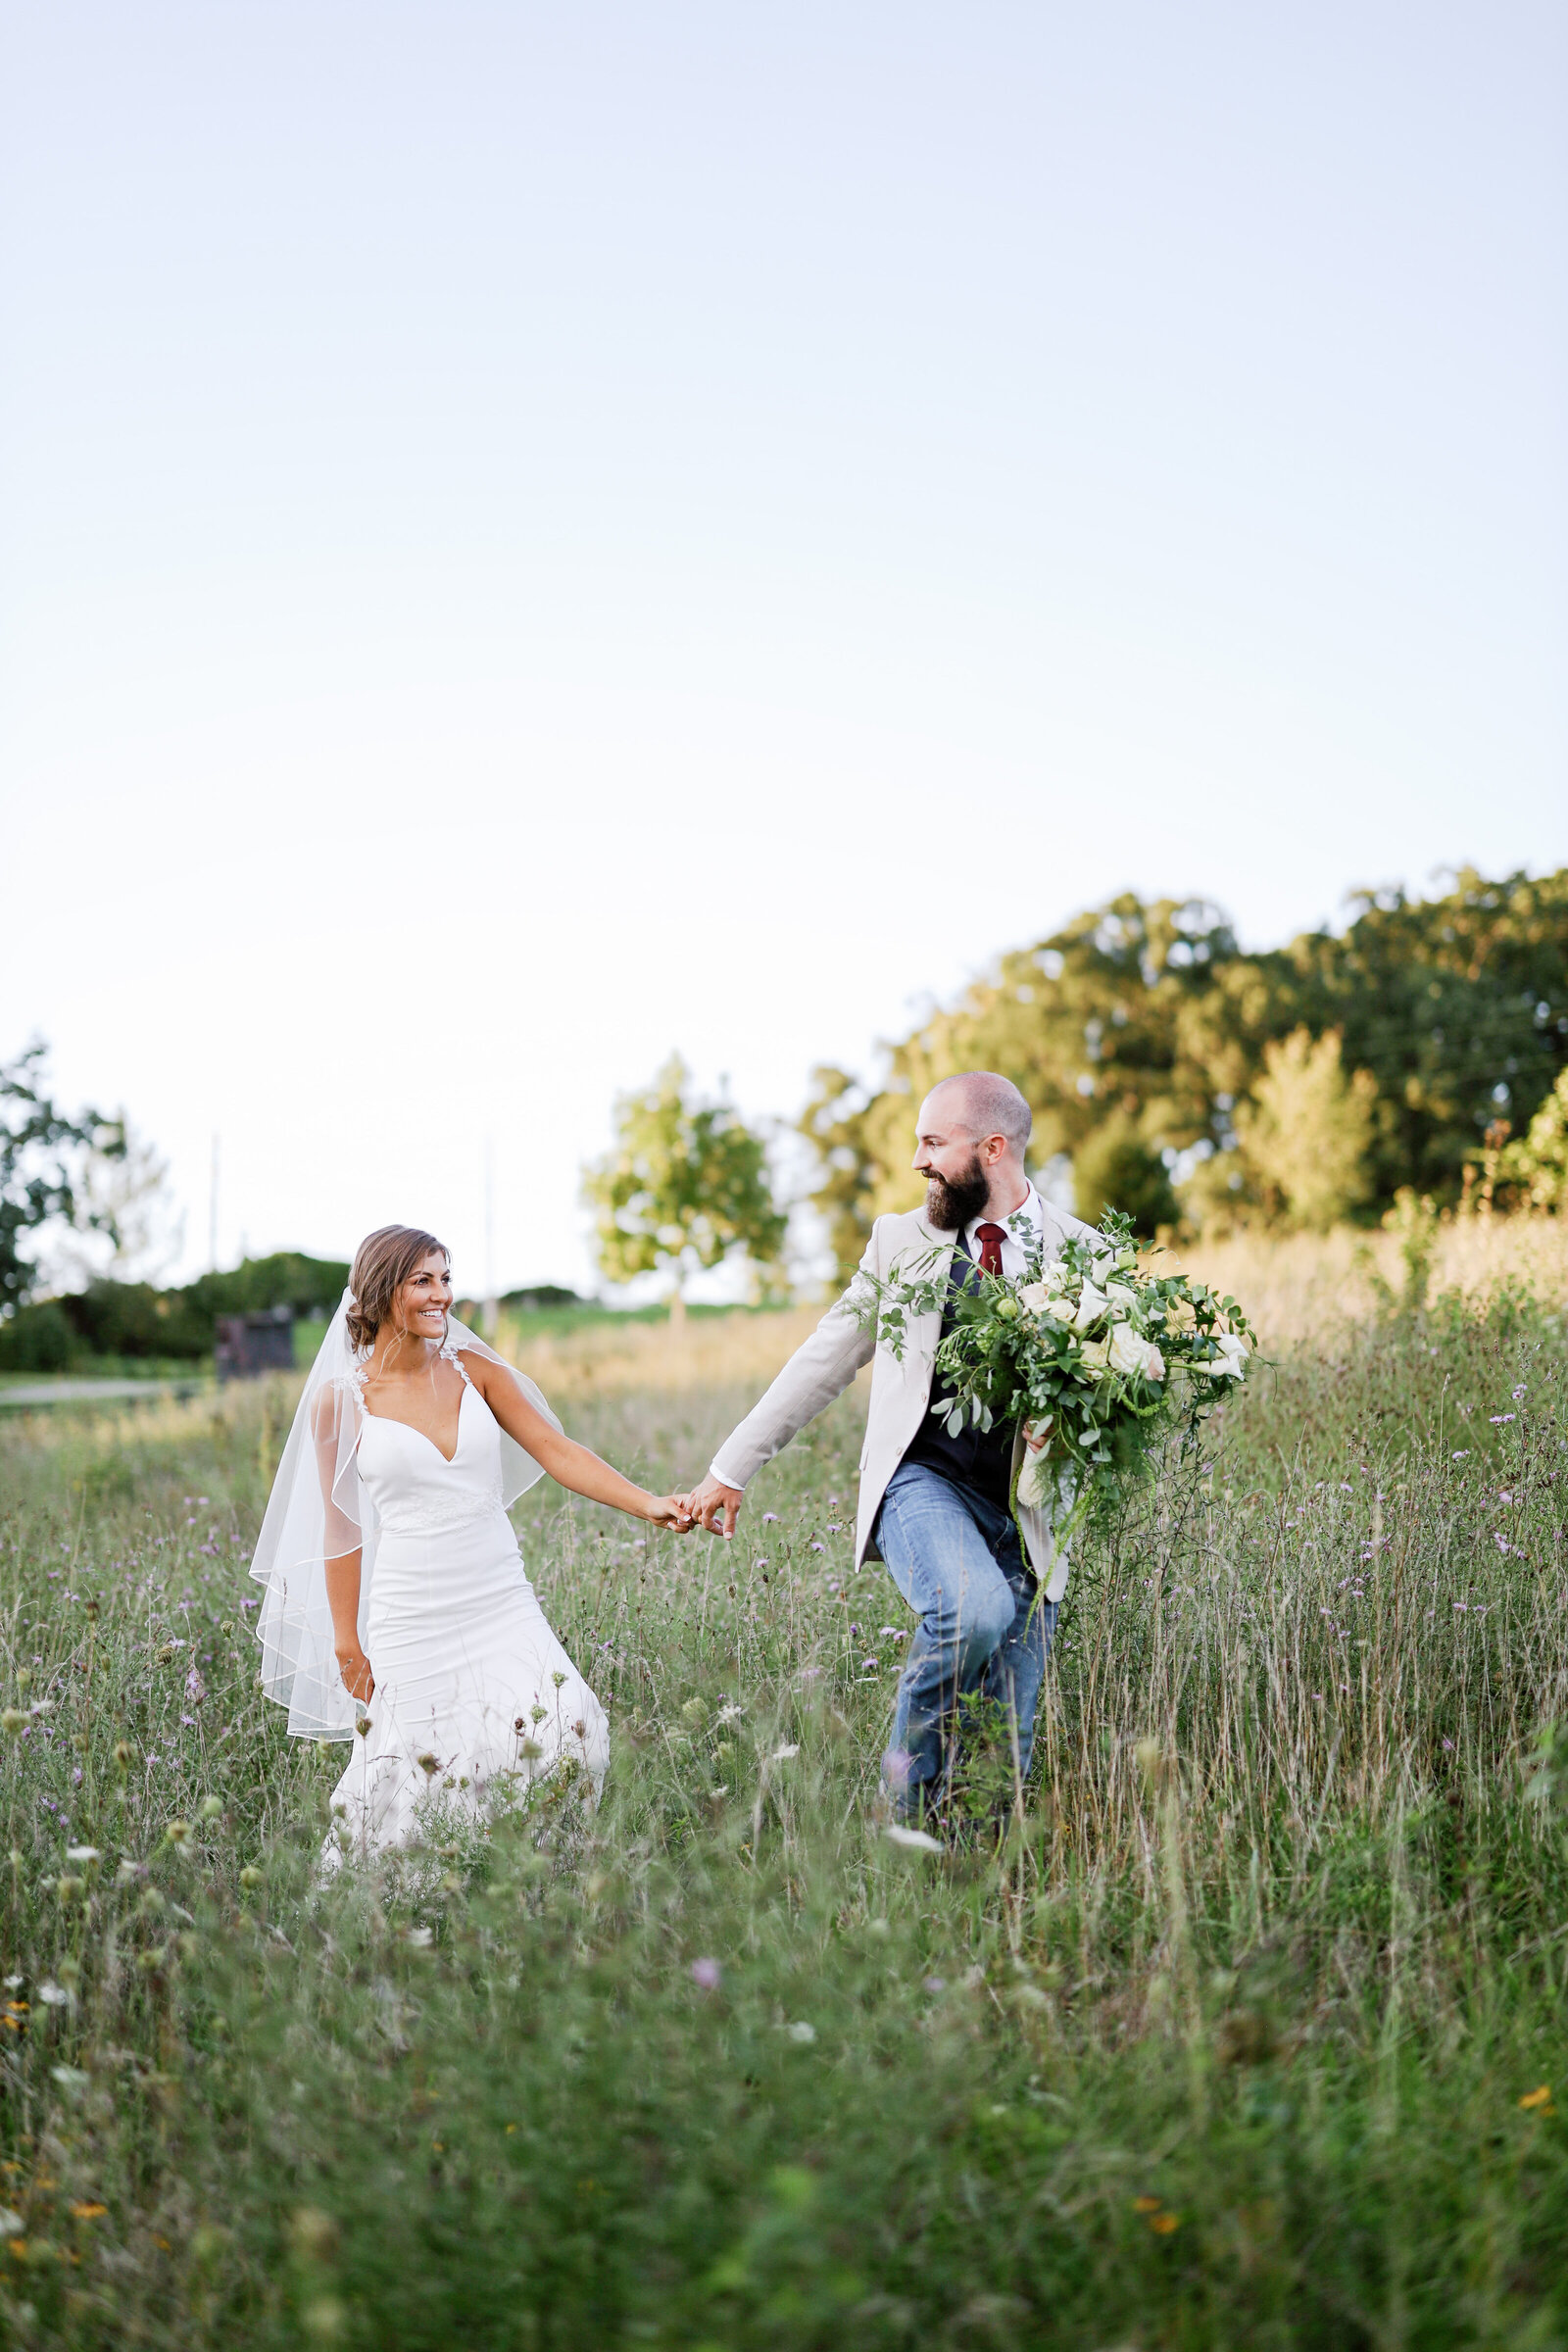 Modern wedding couple with classic florals walking through a field